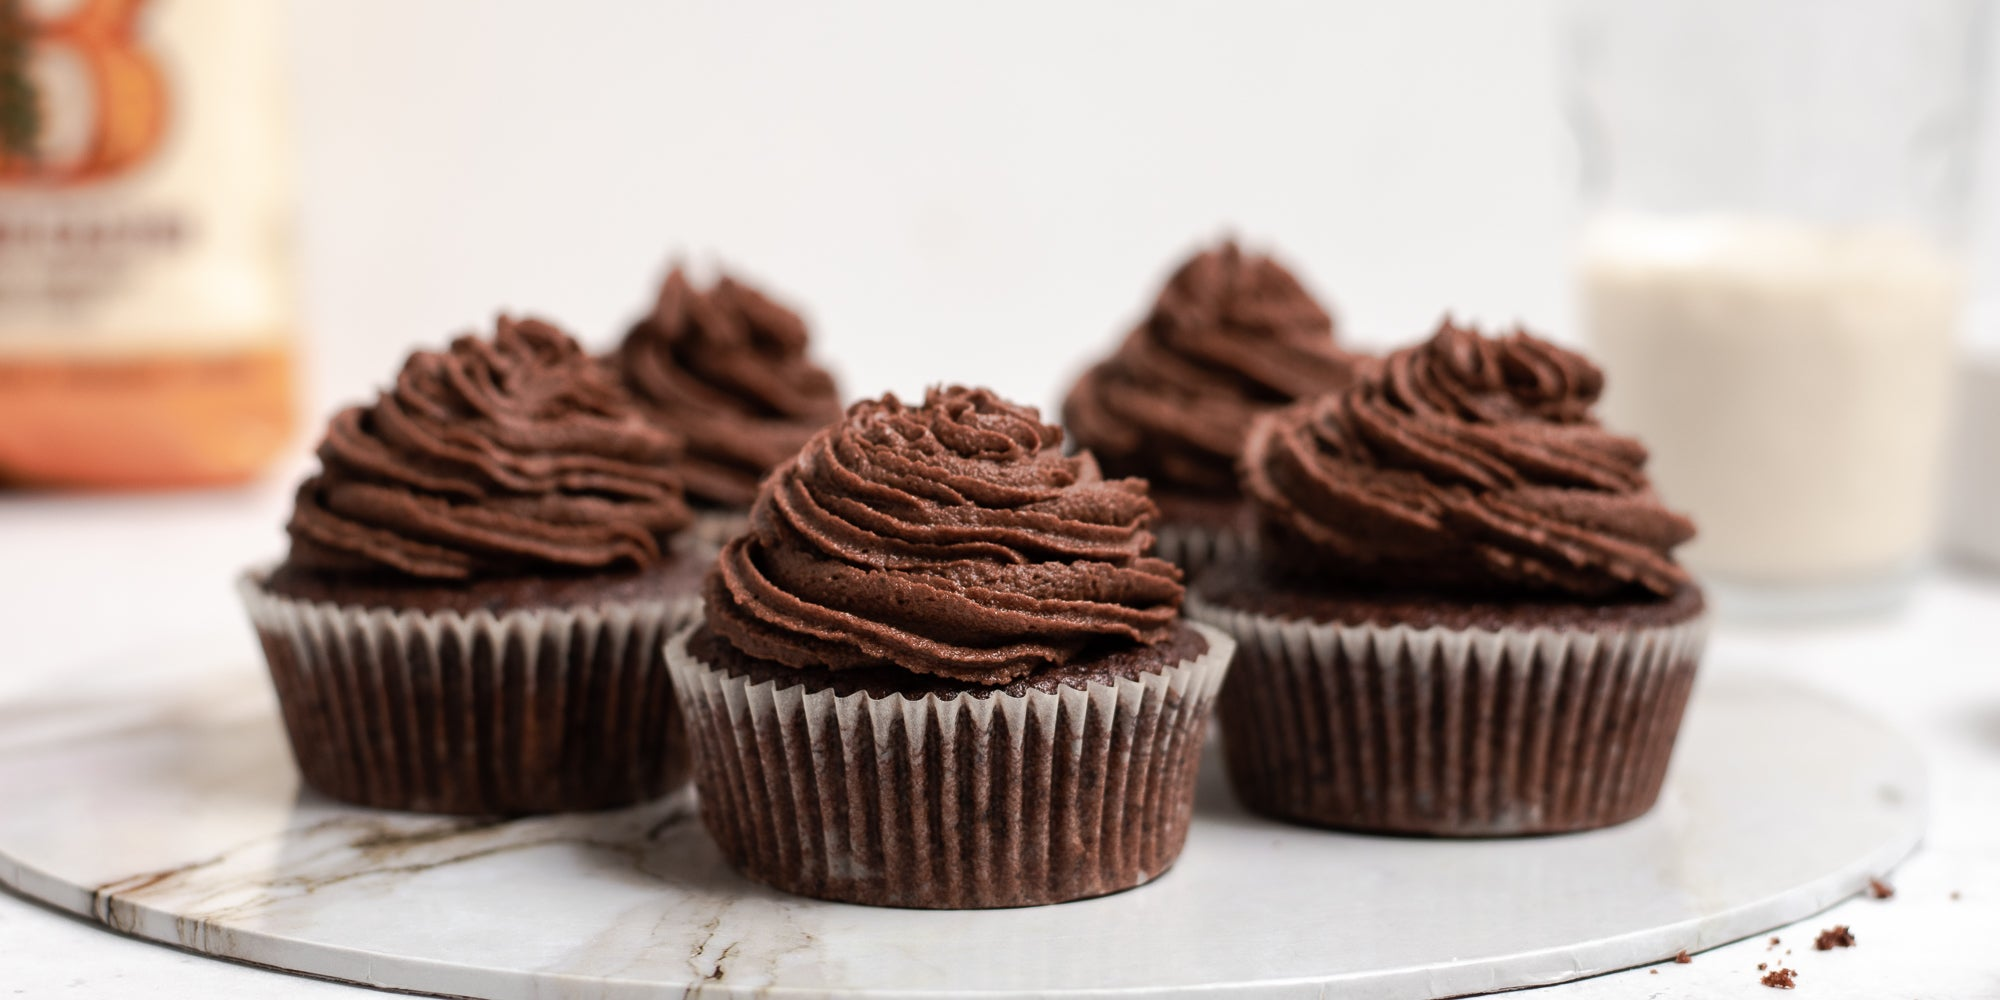 Close up of Vegan Chocolate Cupcakes piped with vegan chocolate buttercream, served on a marble tray